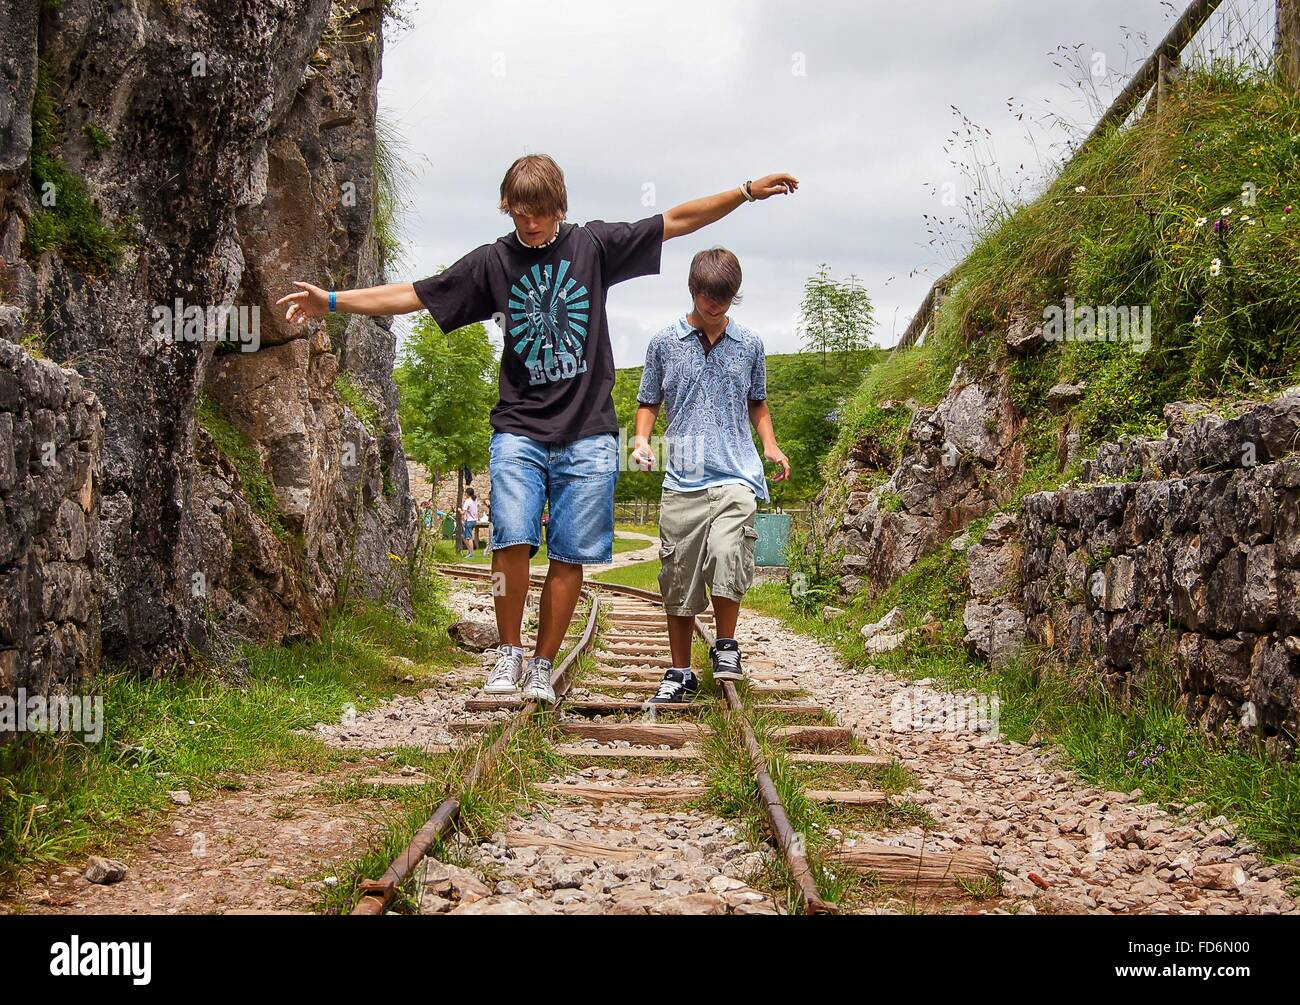 Teenage Boys Playing On Railroad Track - Stock Image